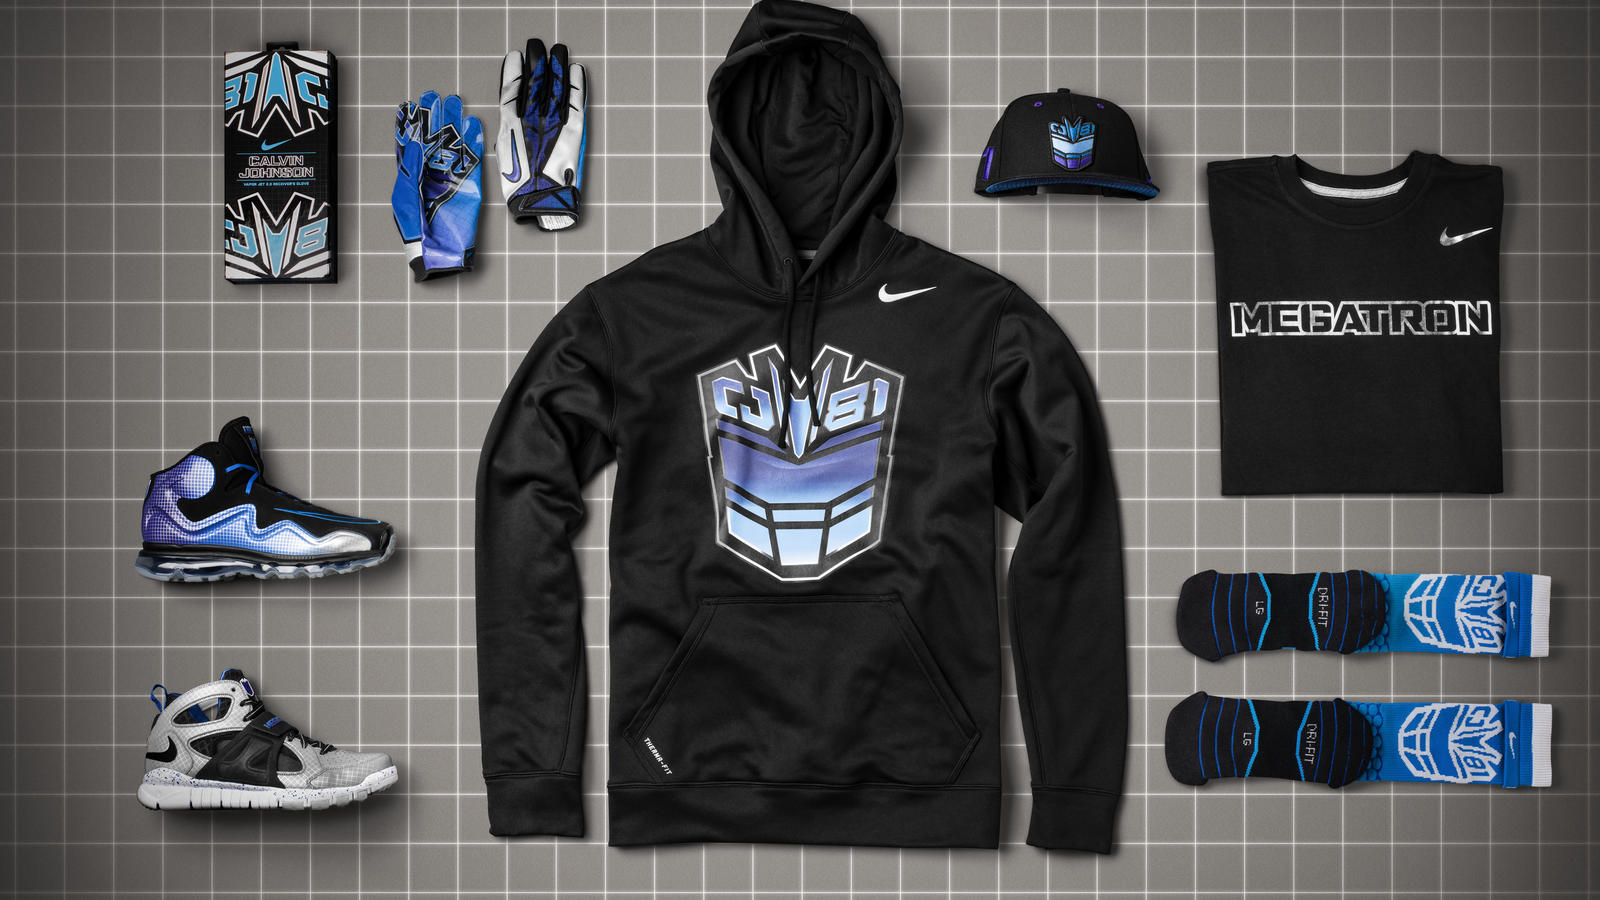 CJ81 Nike Collection inspired by Megatron